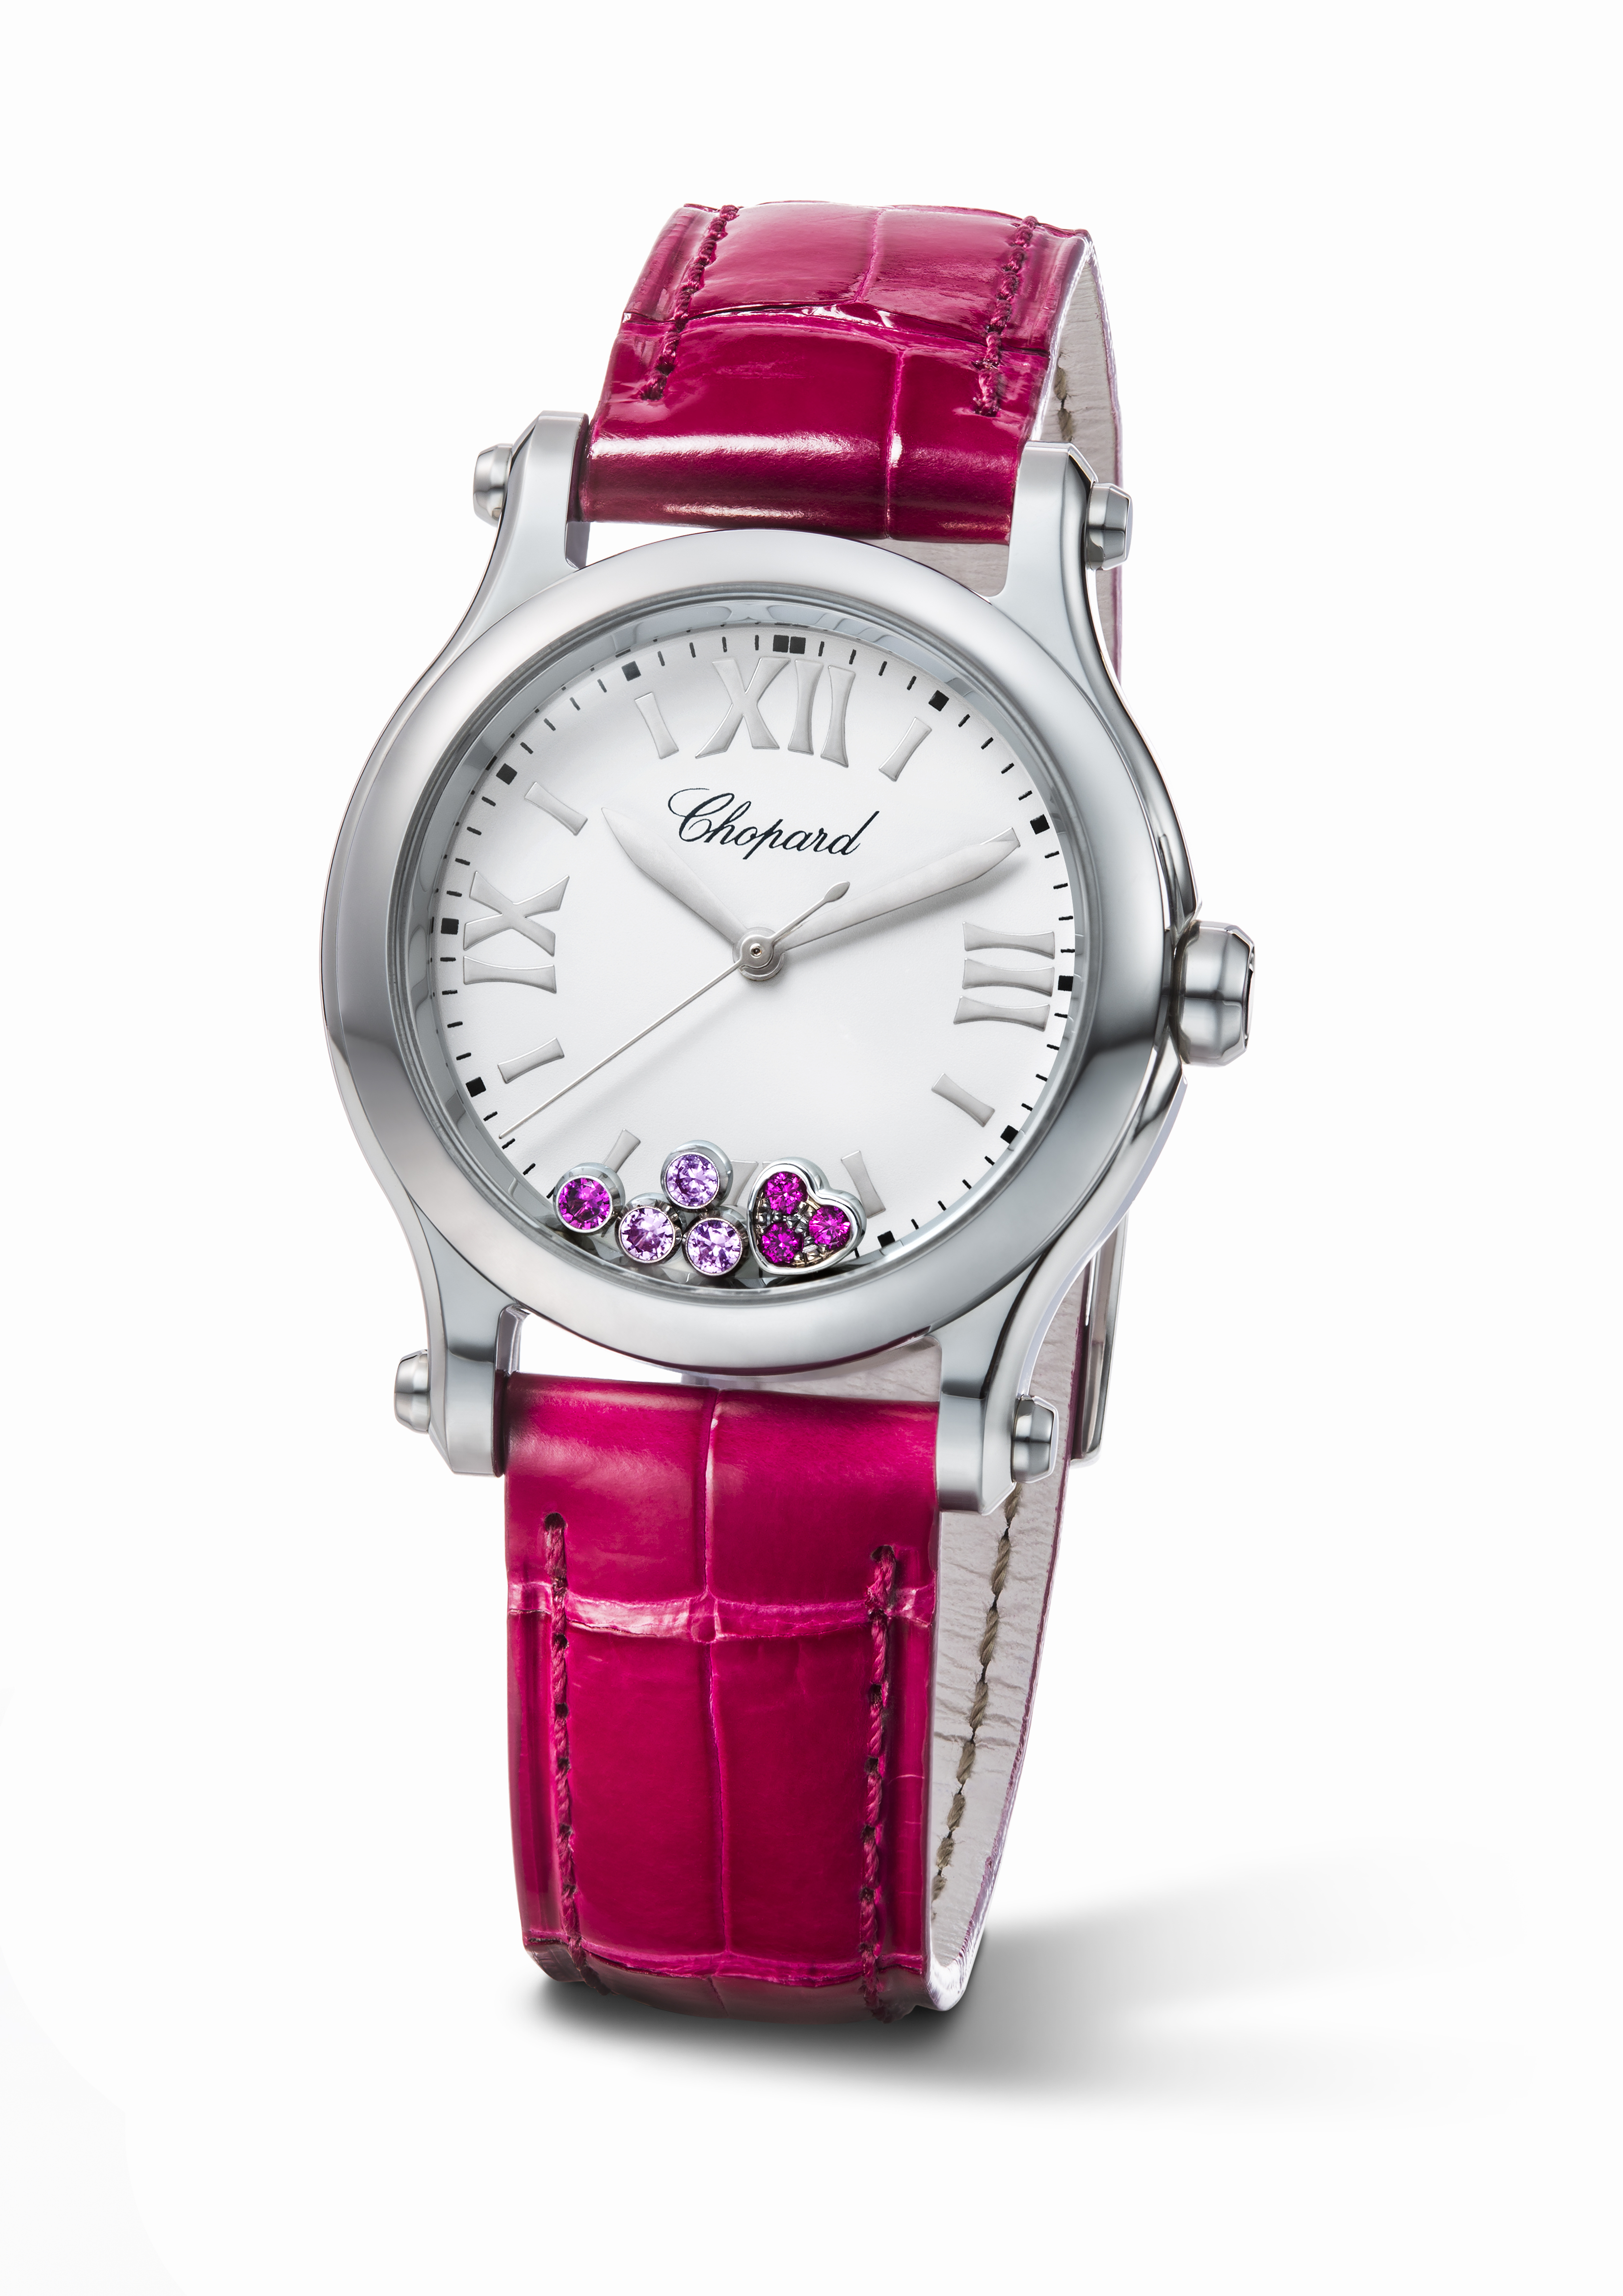 competitive price 4f20d 49a45 ショパール(CHOPARD) ハッピースポーツ 278590-3007 Happy Sport ...